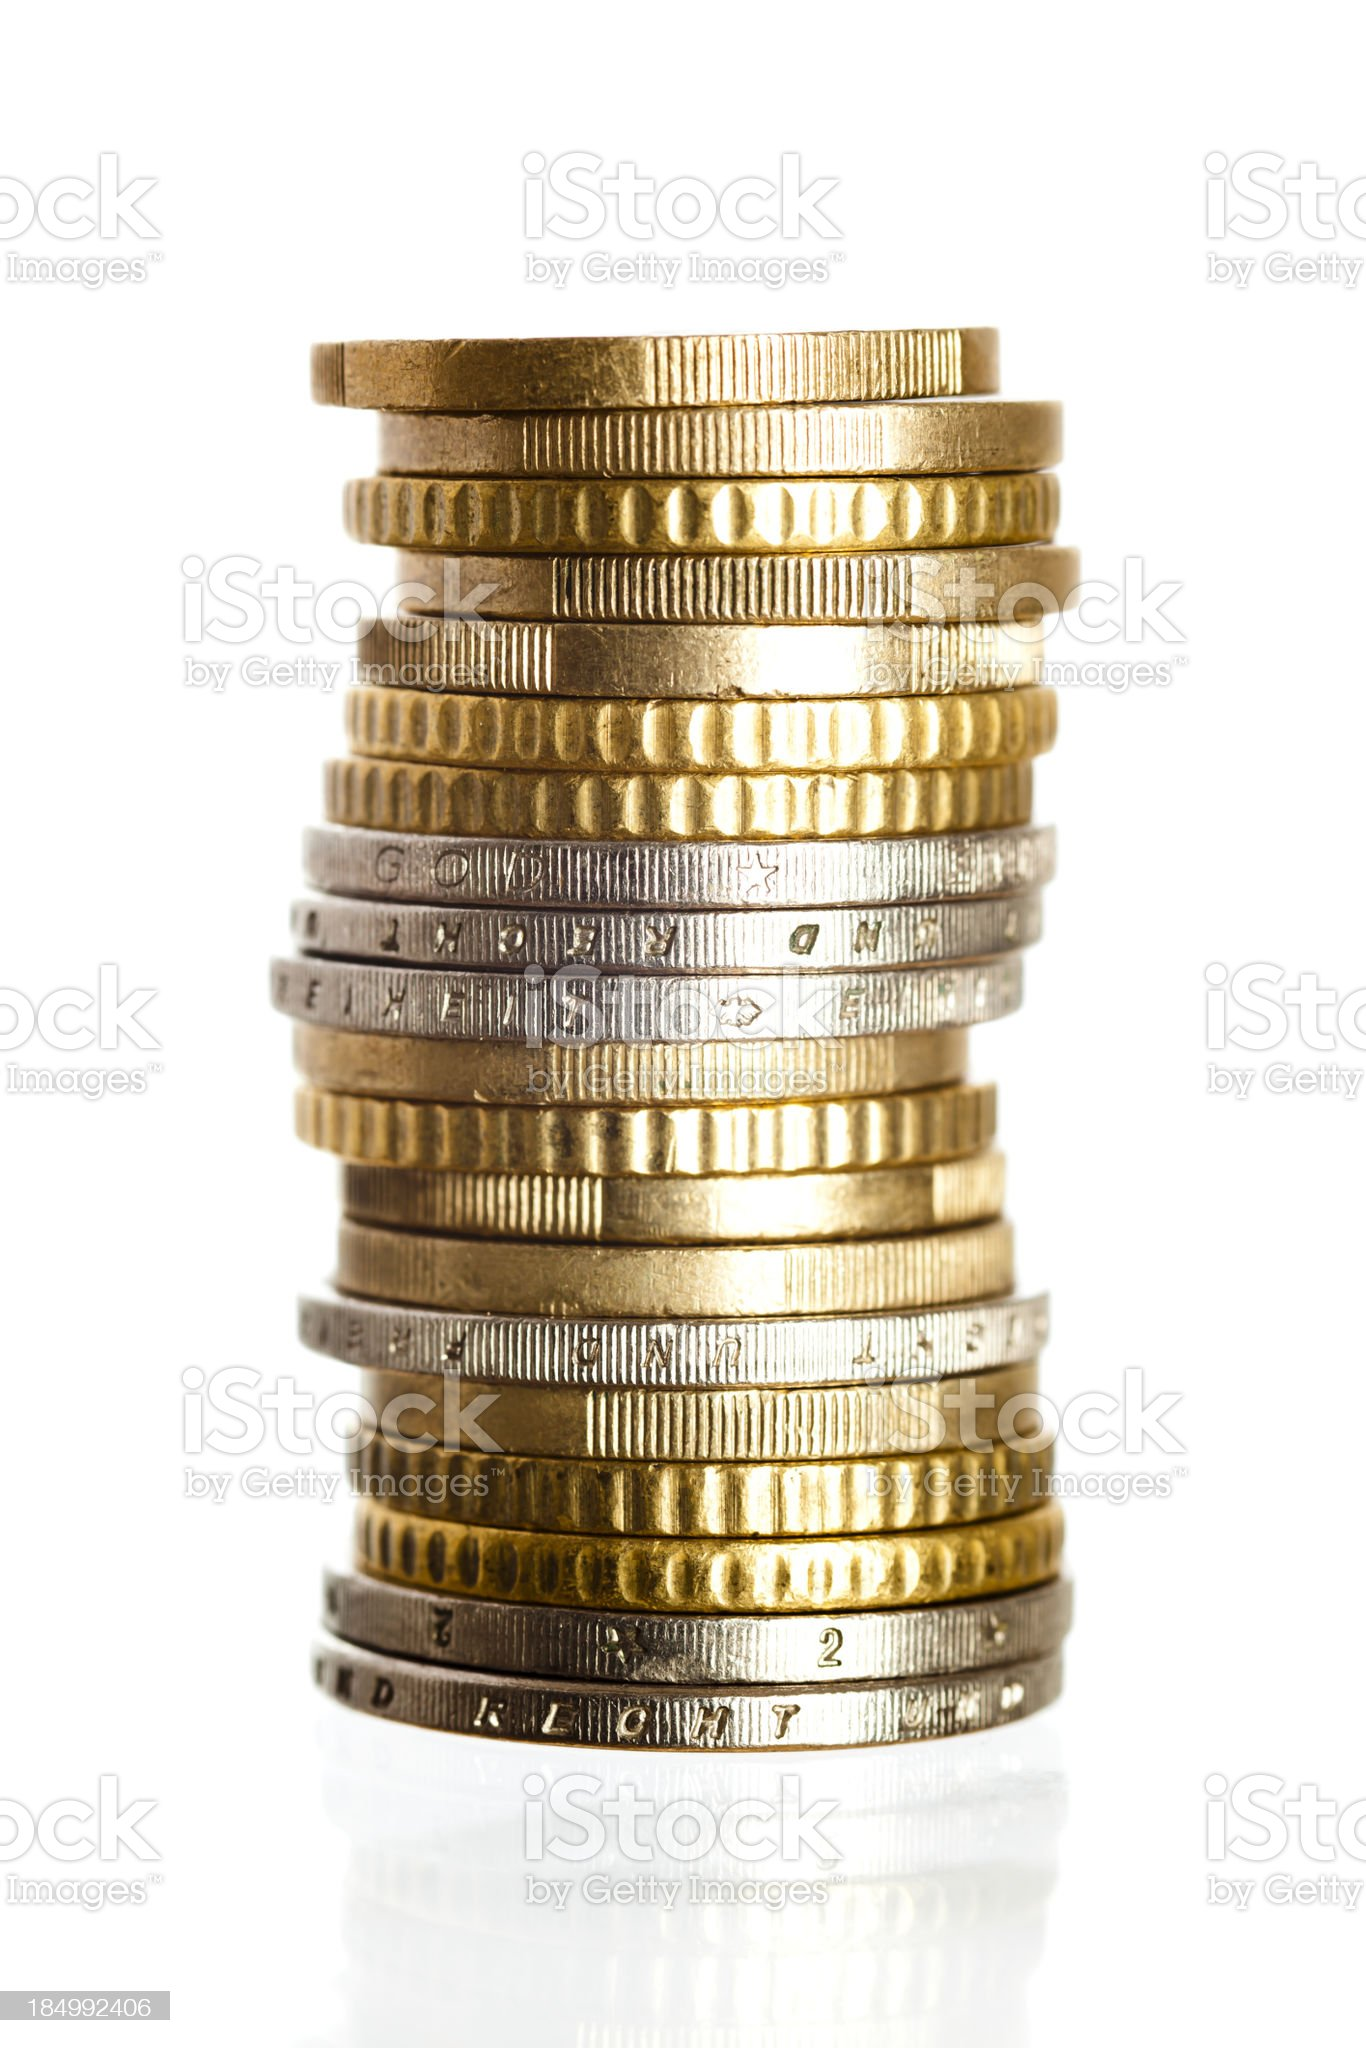 Stack of gold and silver coins royalty-free stock photo